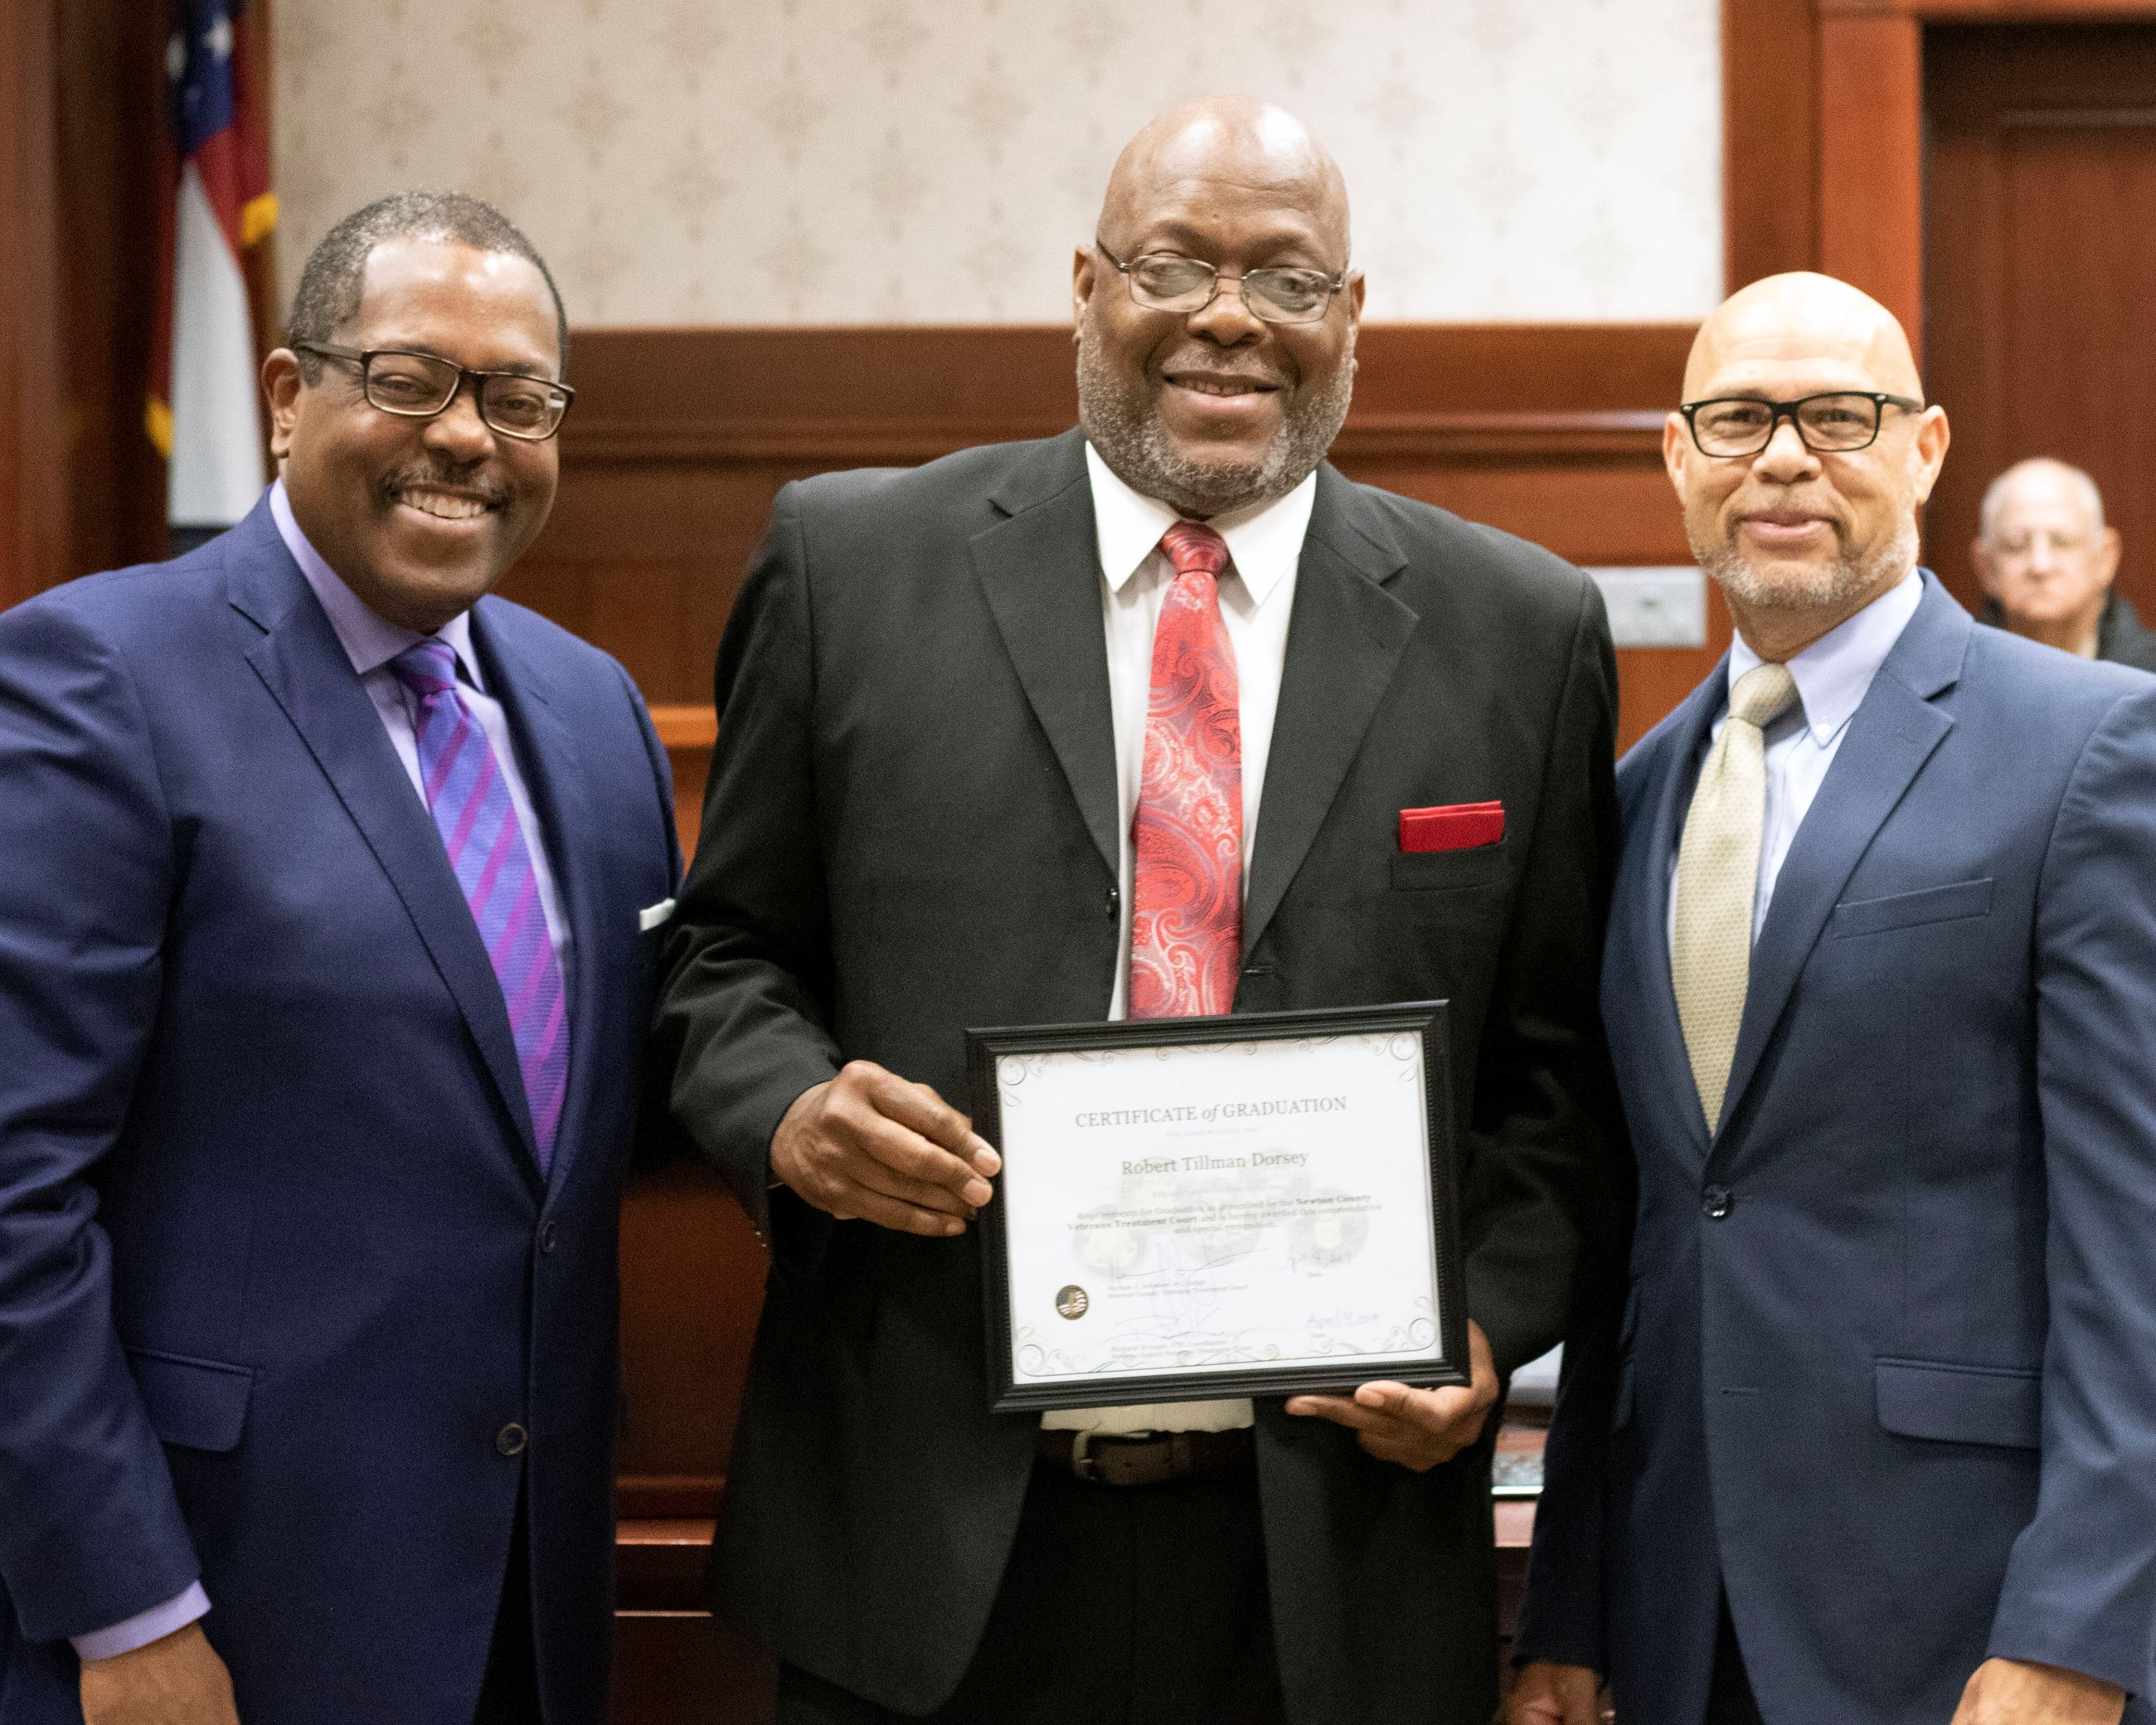 Image of Judge Horace Johnson, Robert Dorsey and Richard Kringer